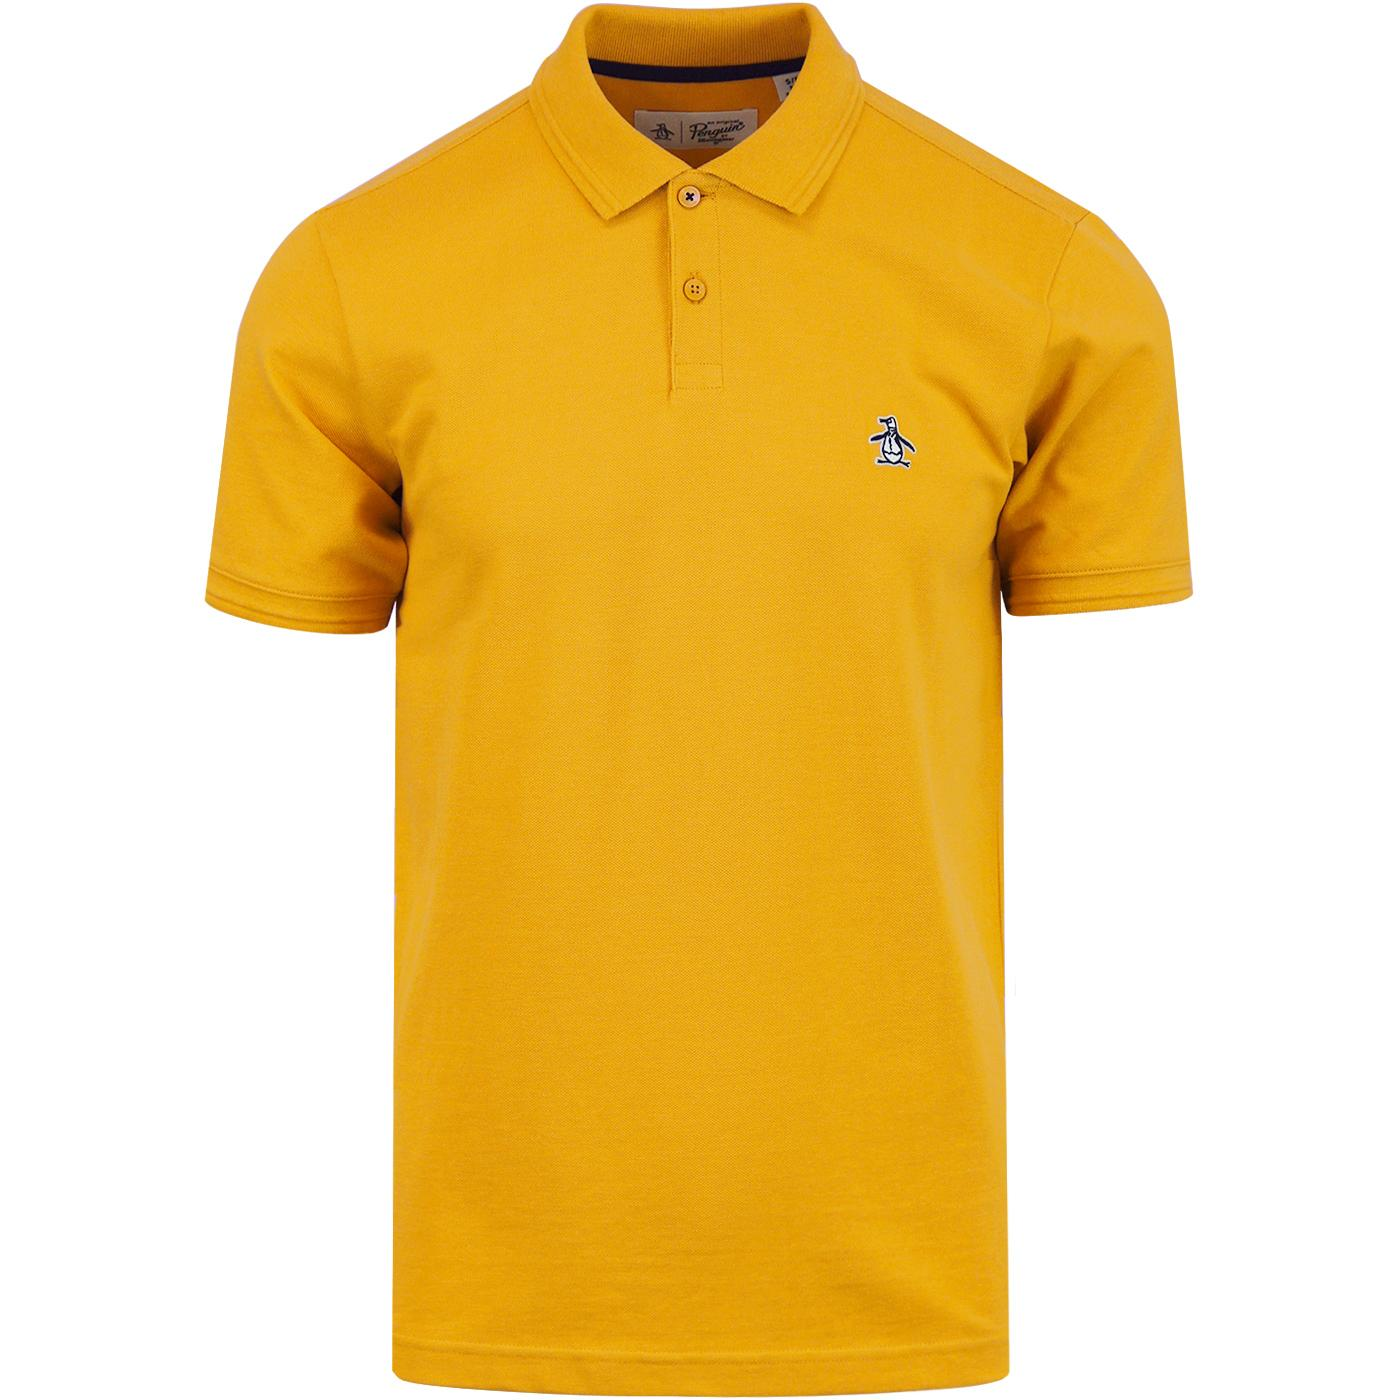 ORIGINAL PENGUIN Raised Rib Pique Polo Shirt HG